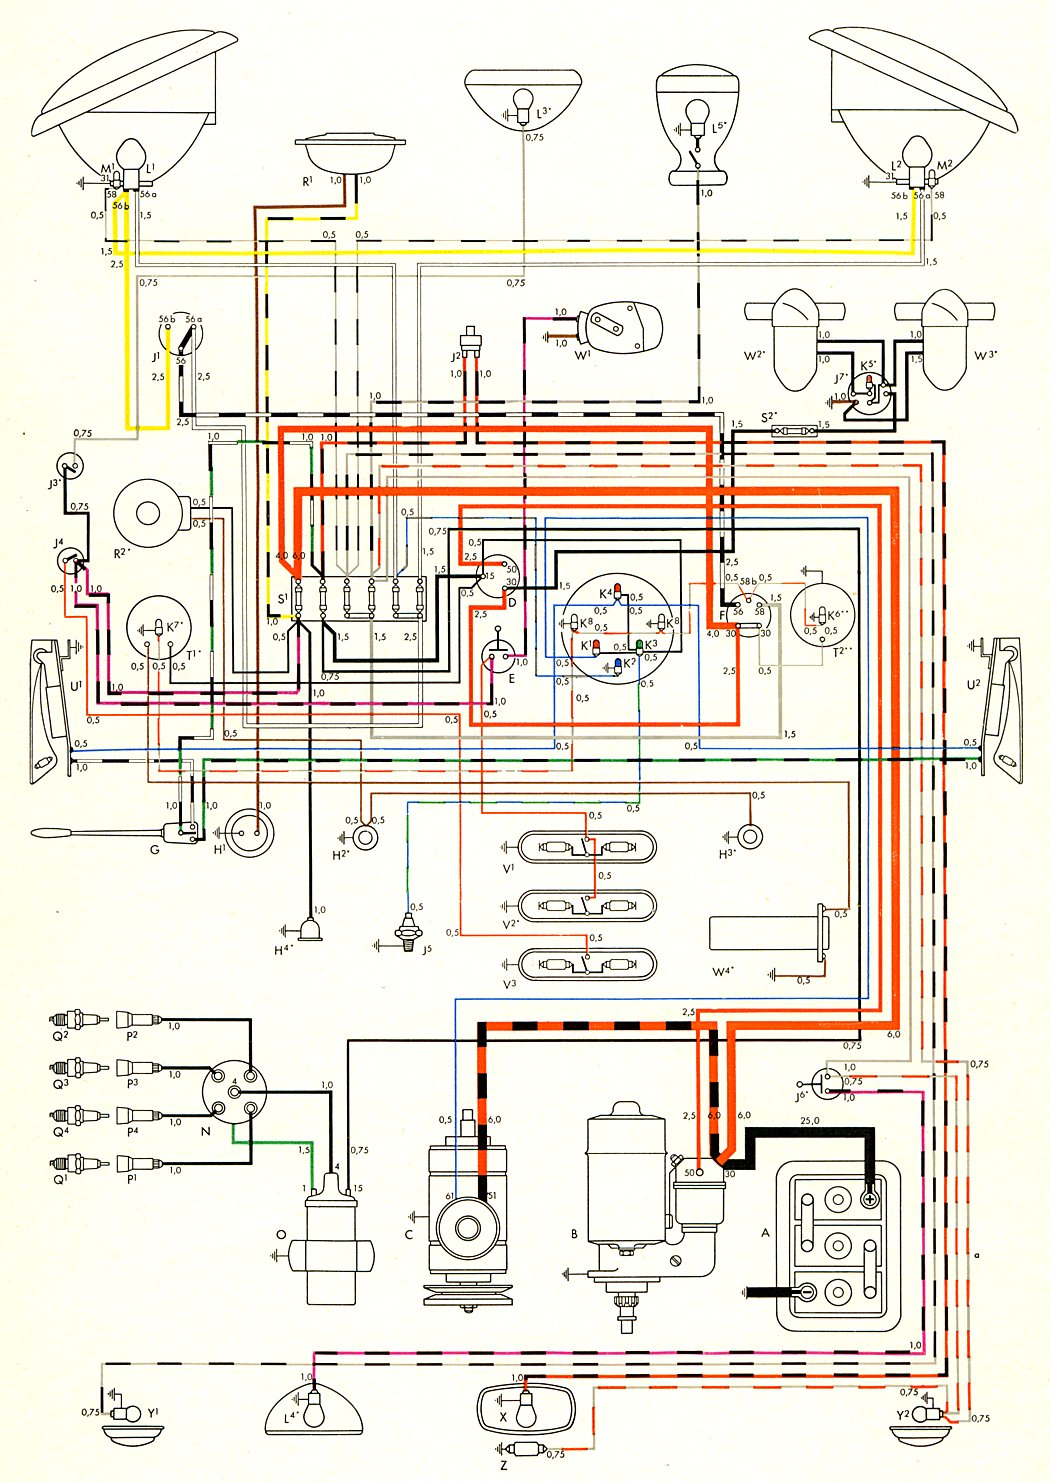 thesamba.com :: type 2 wiring diagrams vw 73 bus alternator wiring diagram